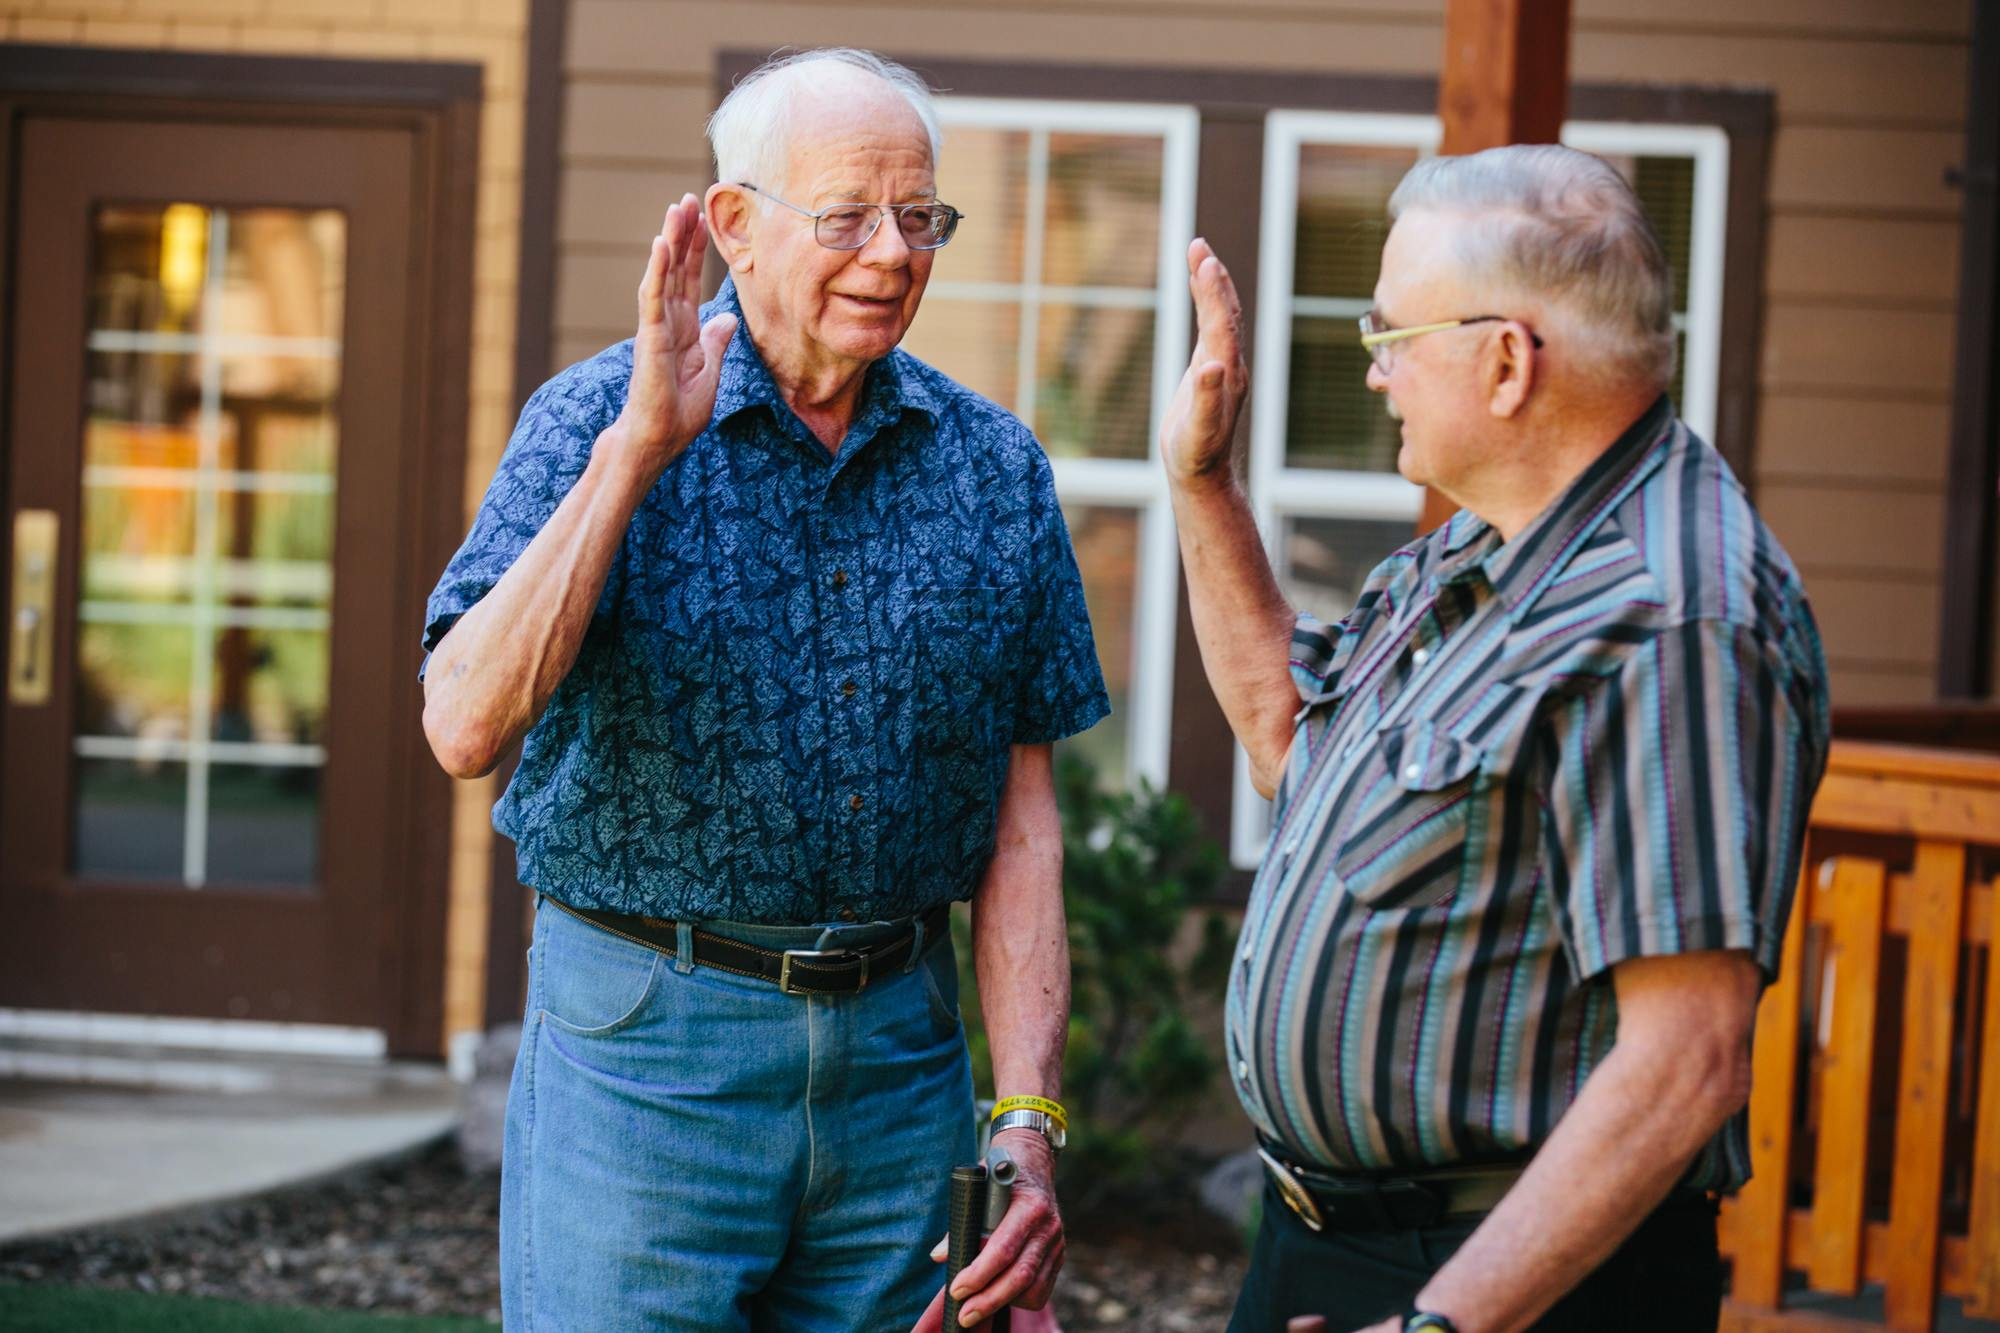 Residents celebrate a round of golf in the courtyard in Missoula